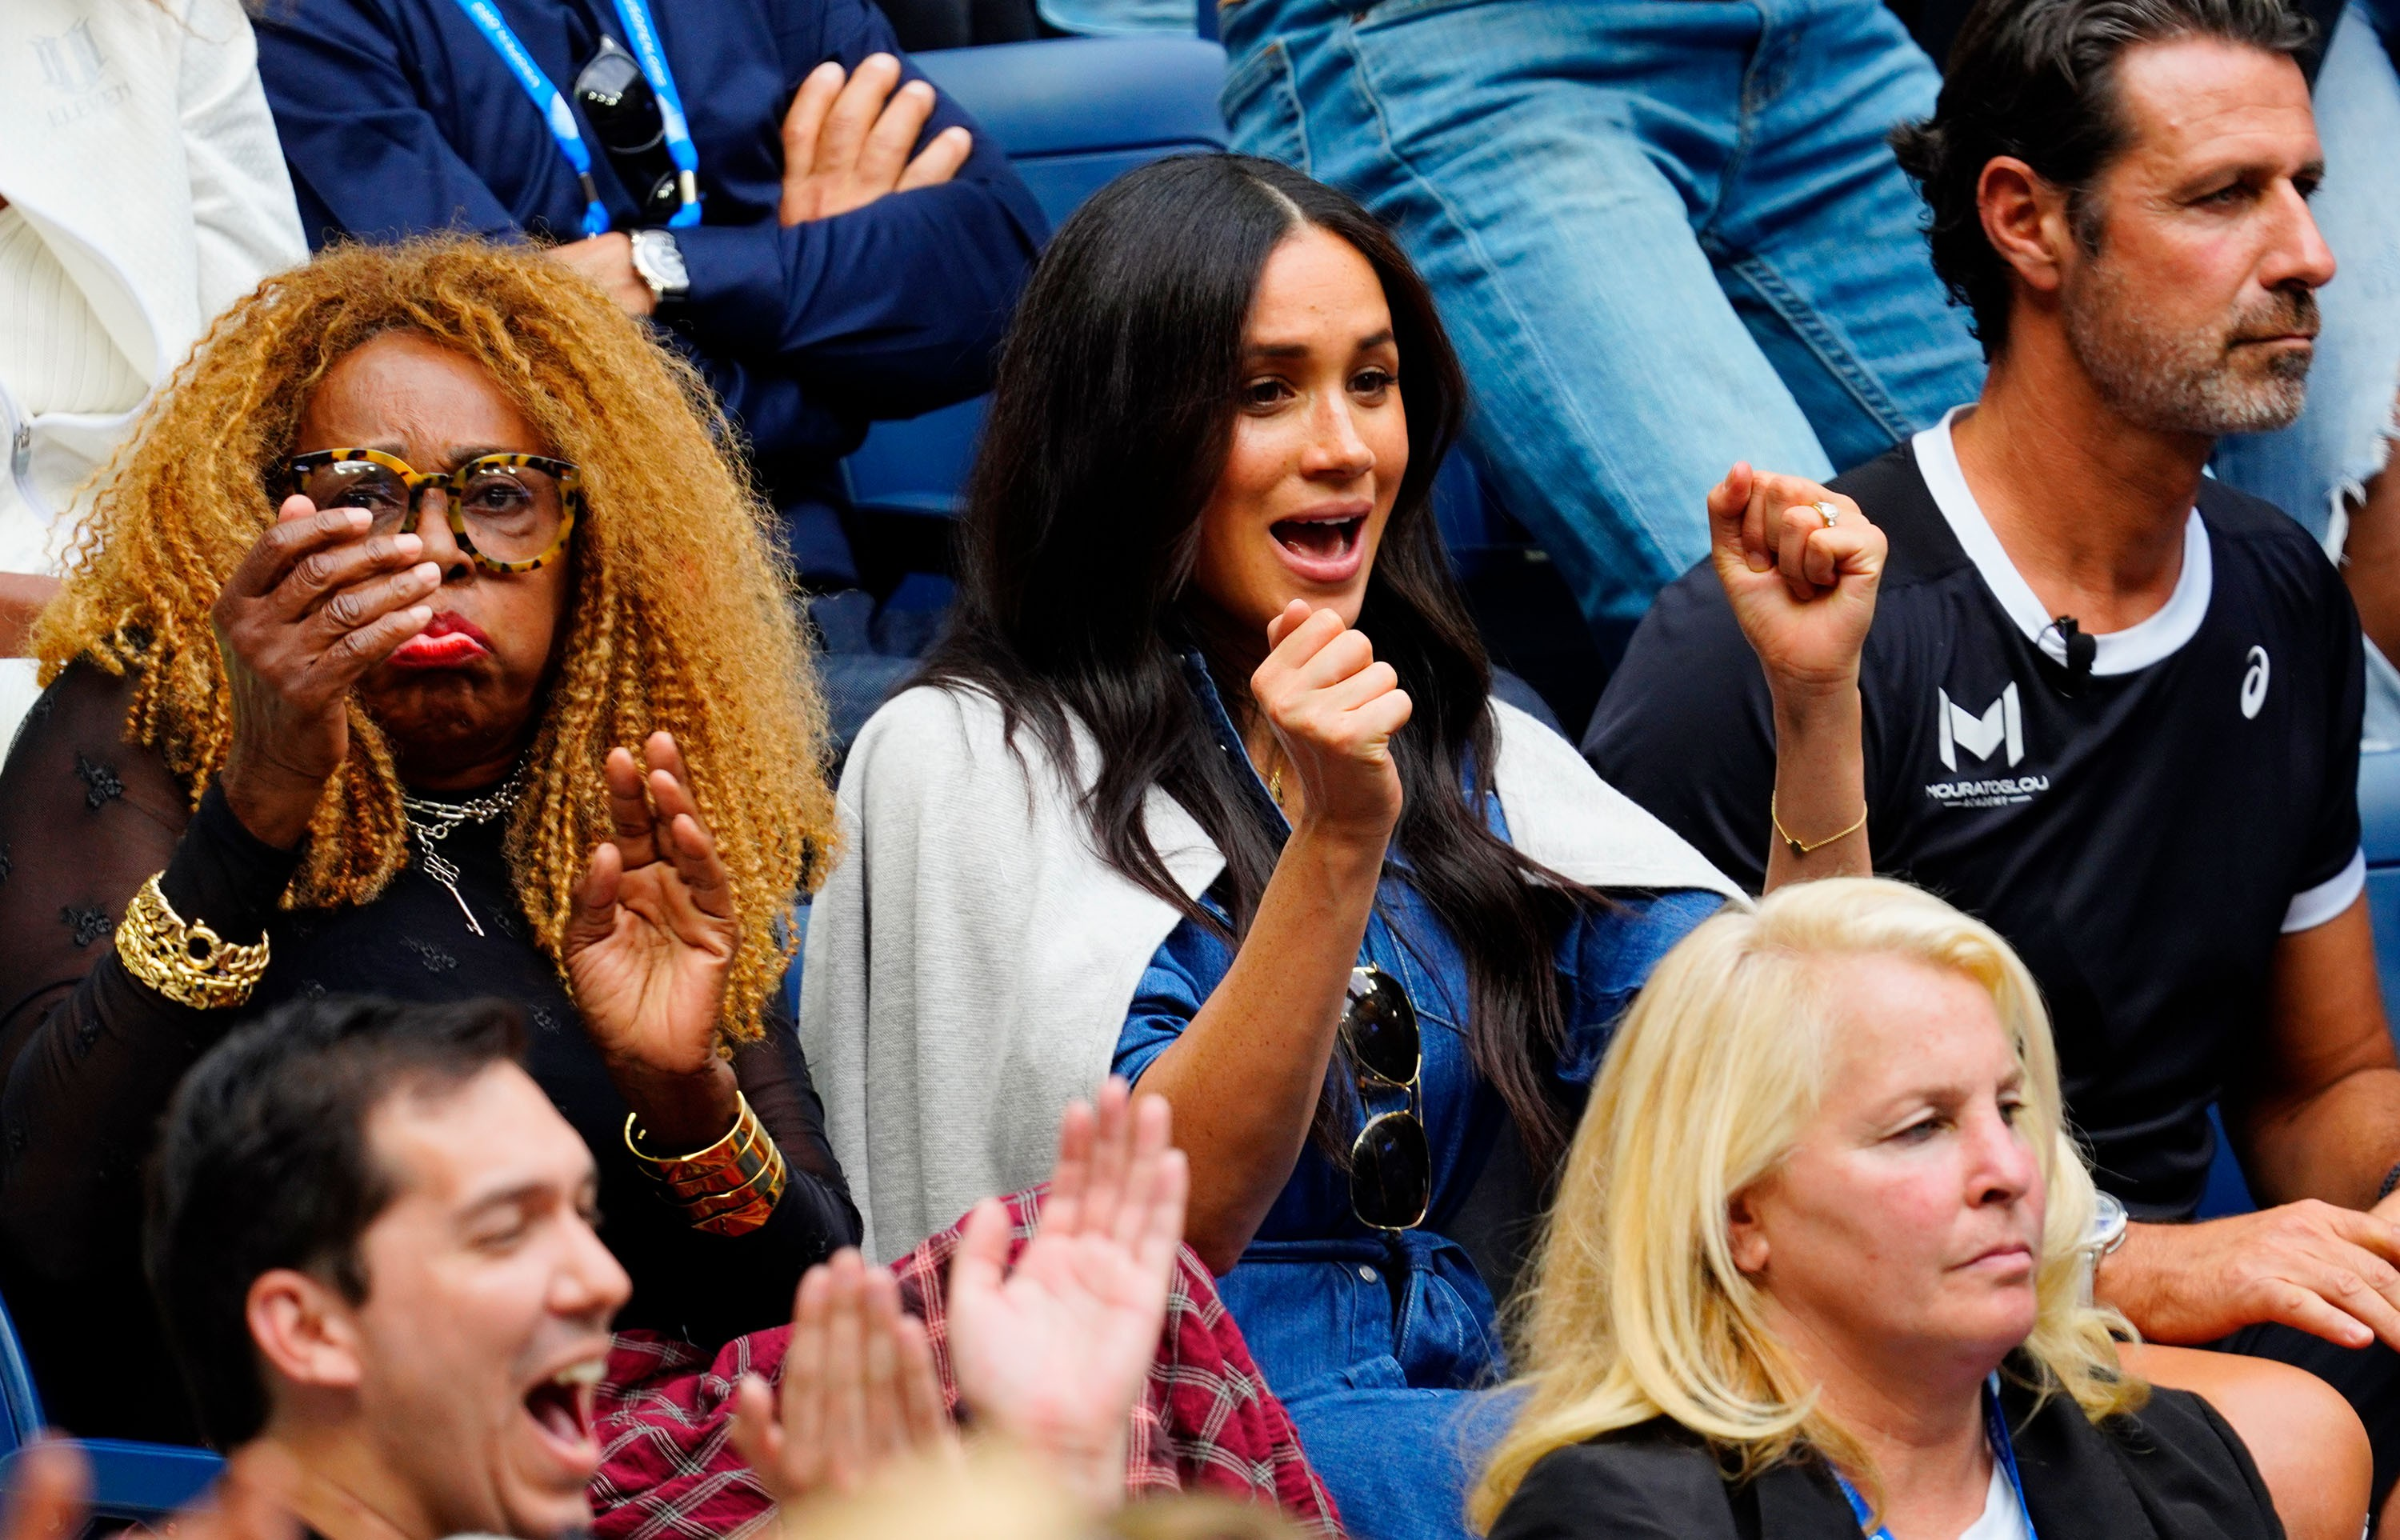 Oracene Price e Meghan Markle, Duquesa de Sussex, assistem à Serena Williams na final do US Open 2019 em Nova York (Foto: Getty Images)